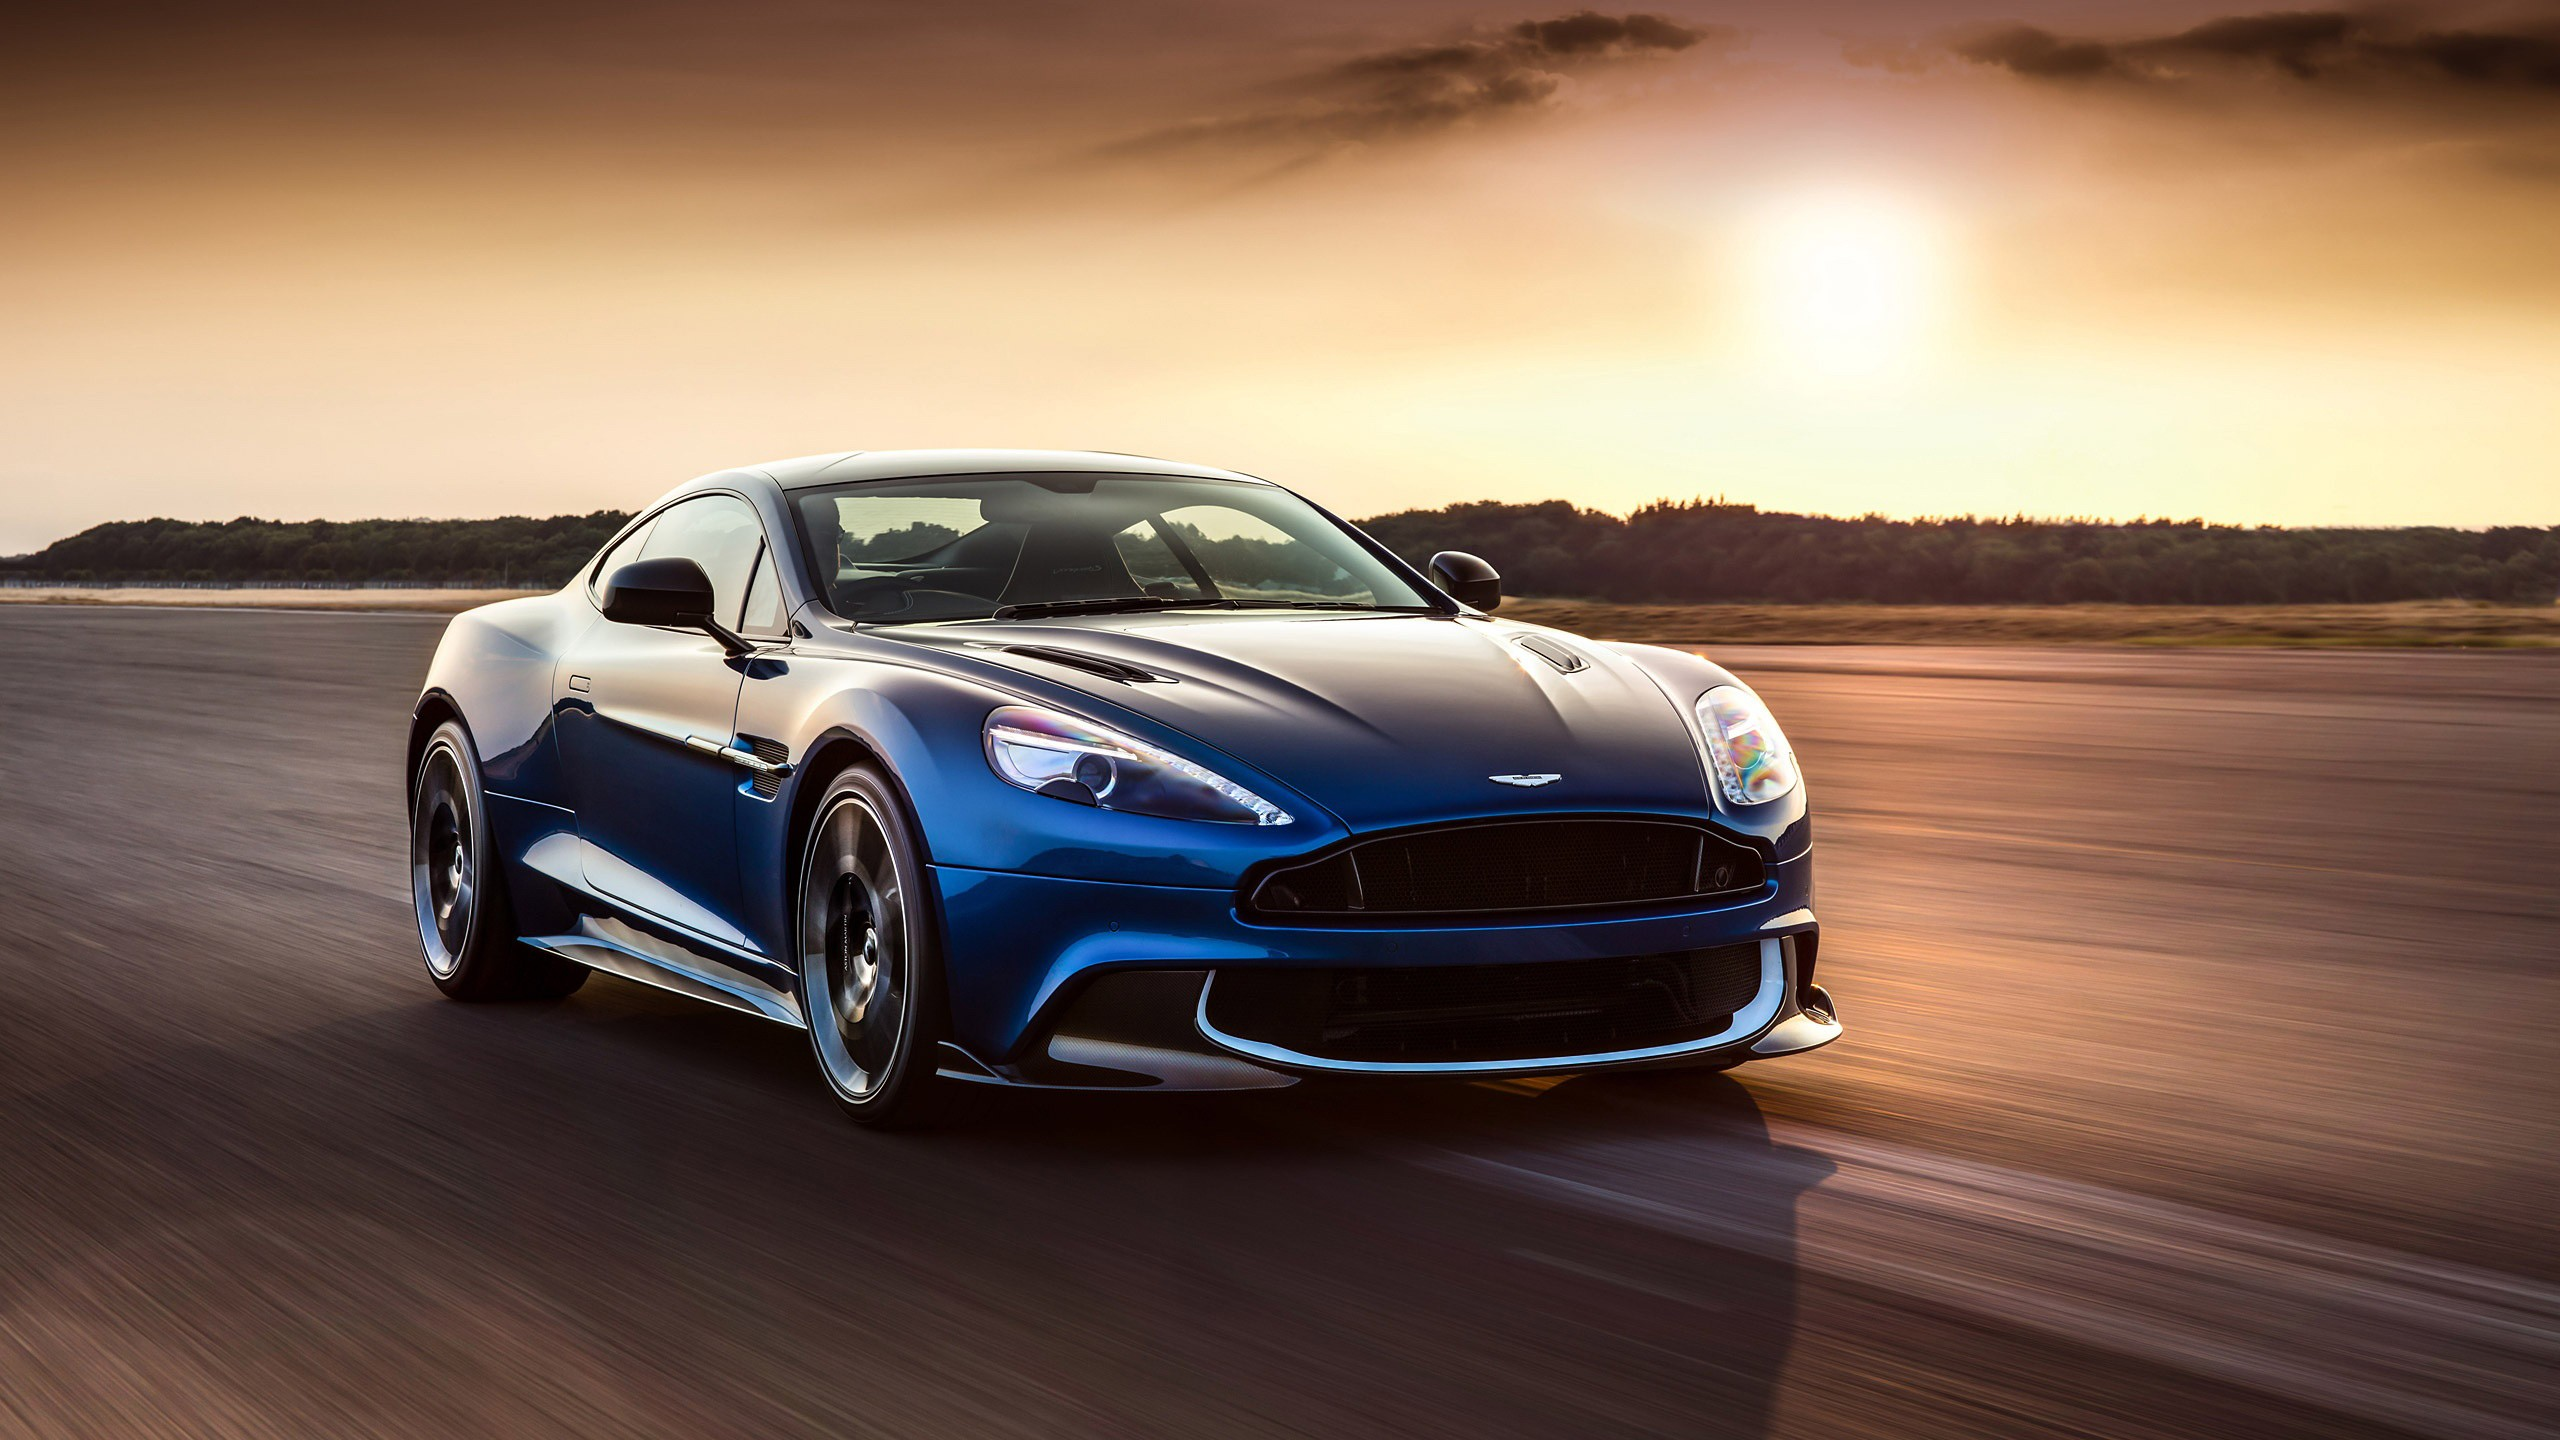 2017 Aston Martin Vanquish S Wallpaper HD Car Wallpapers ID 7170 2560x1440